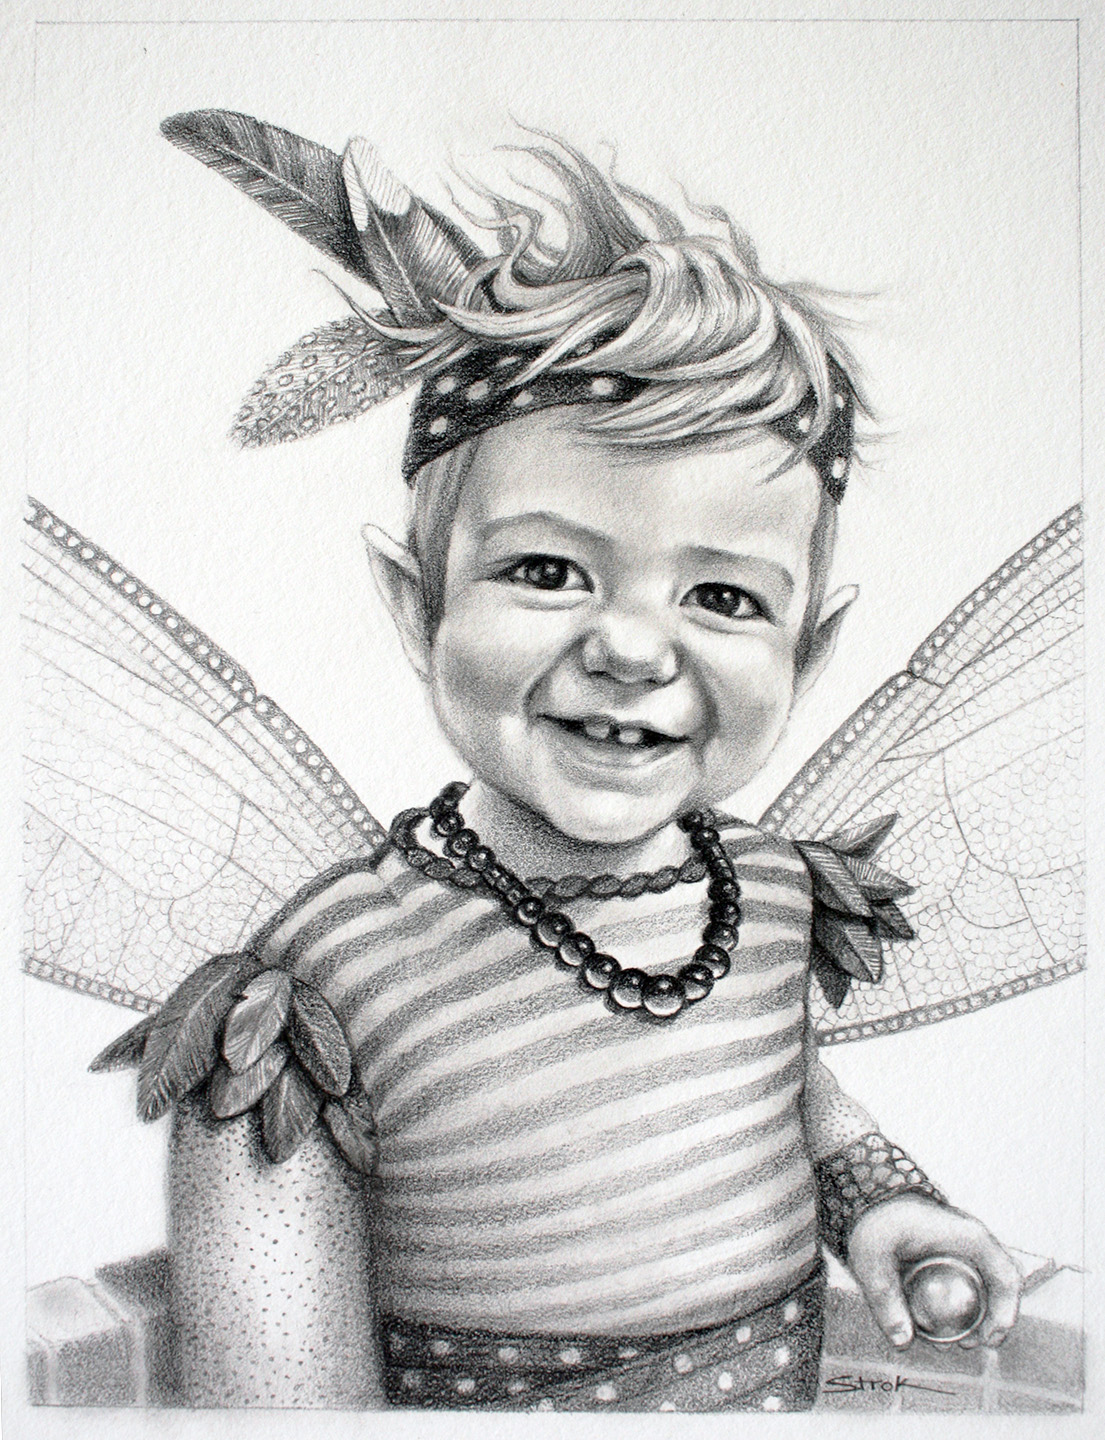 Magical Portrait of young boy in Wonderland